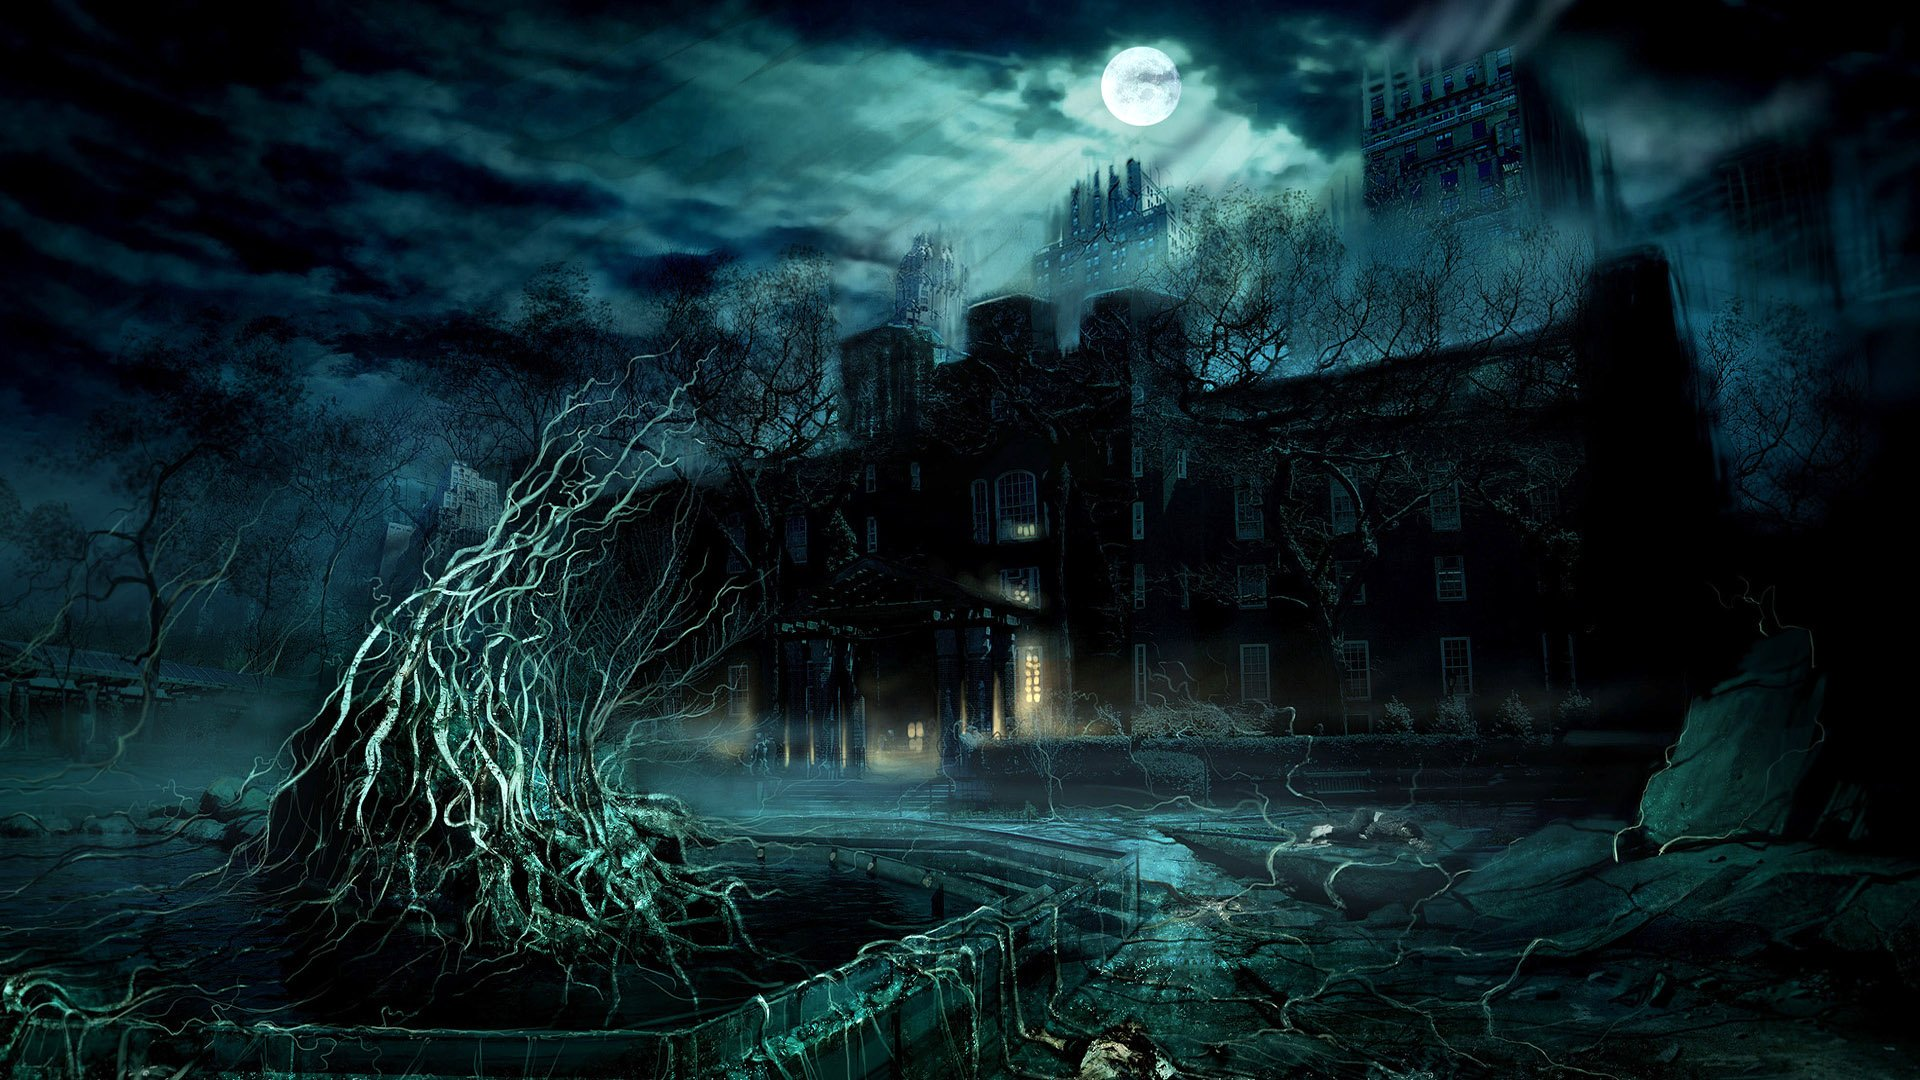 dark house 1080p wallpapers download hd wallpapers category hd 1920x1080